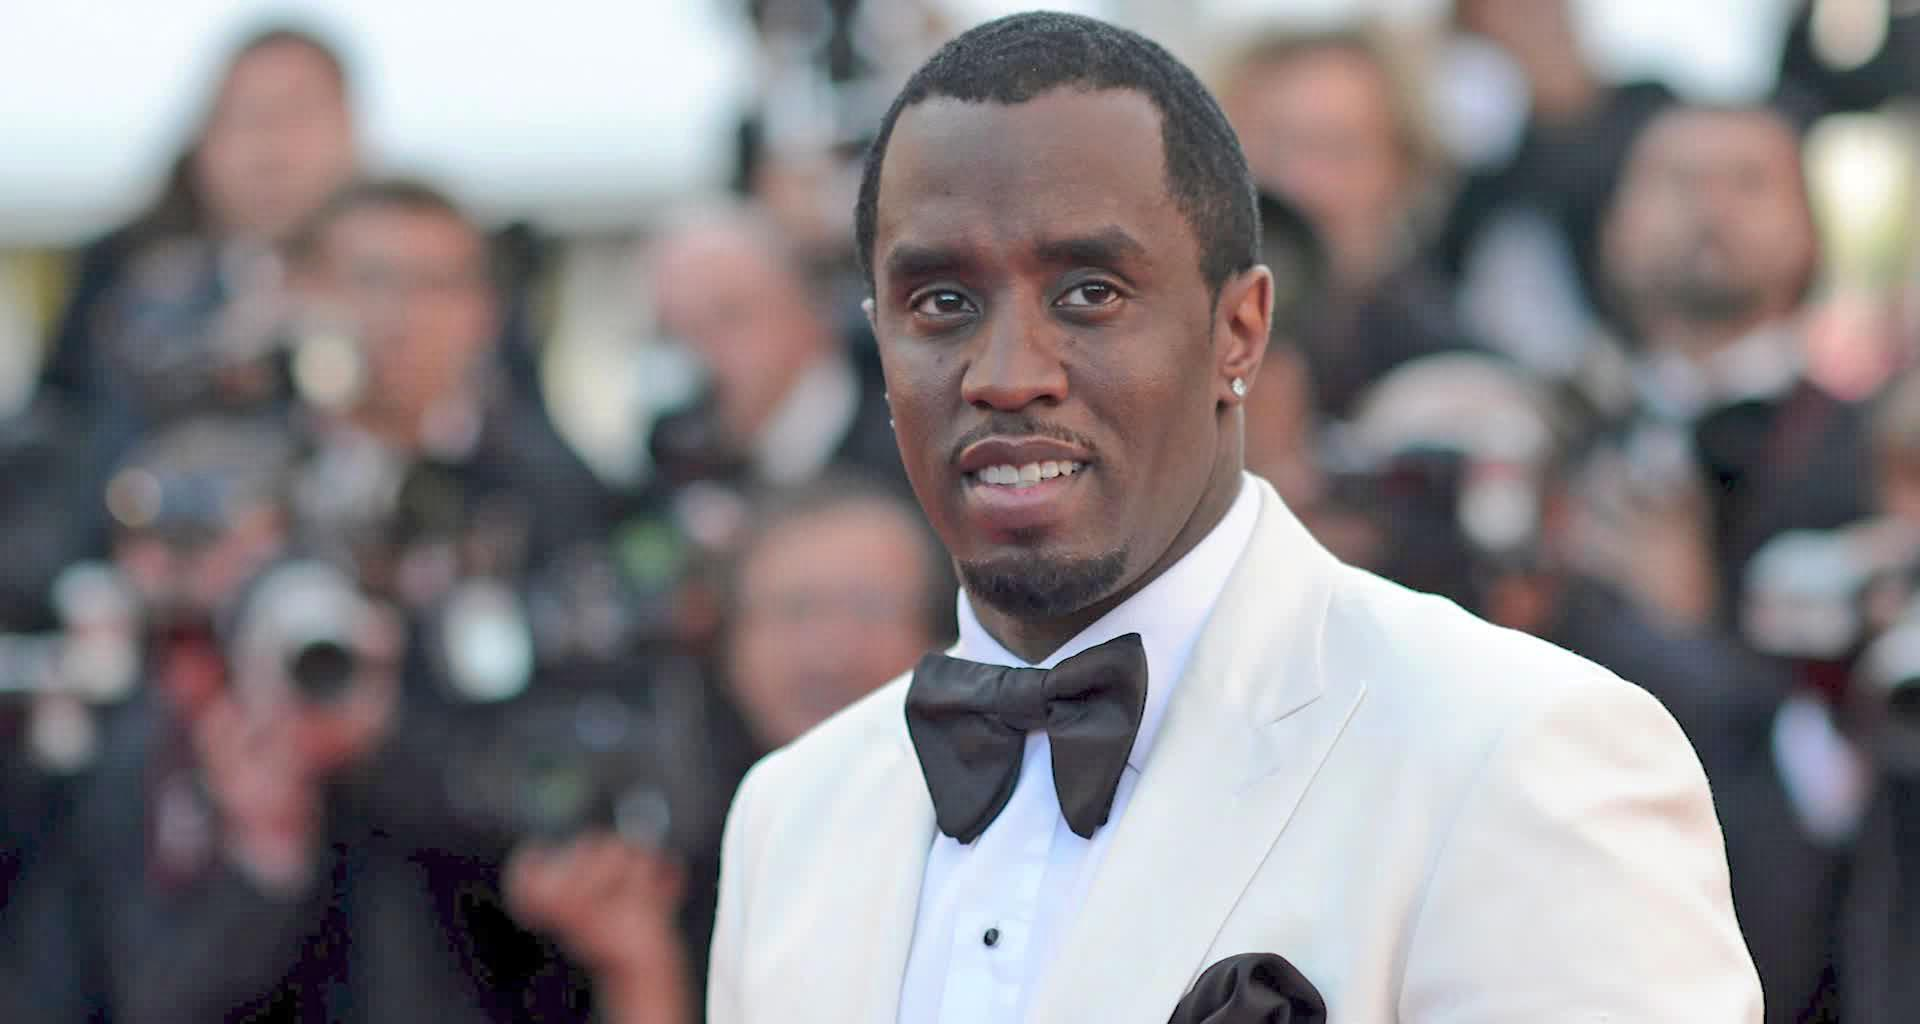 Diddy's Family Video Has Fans Smiling - Watch It Here